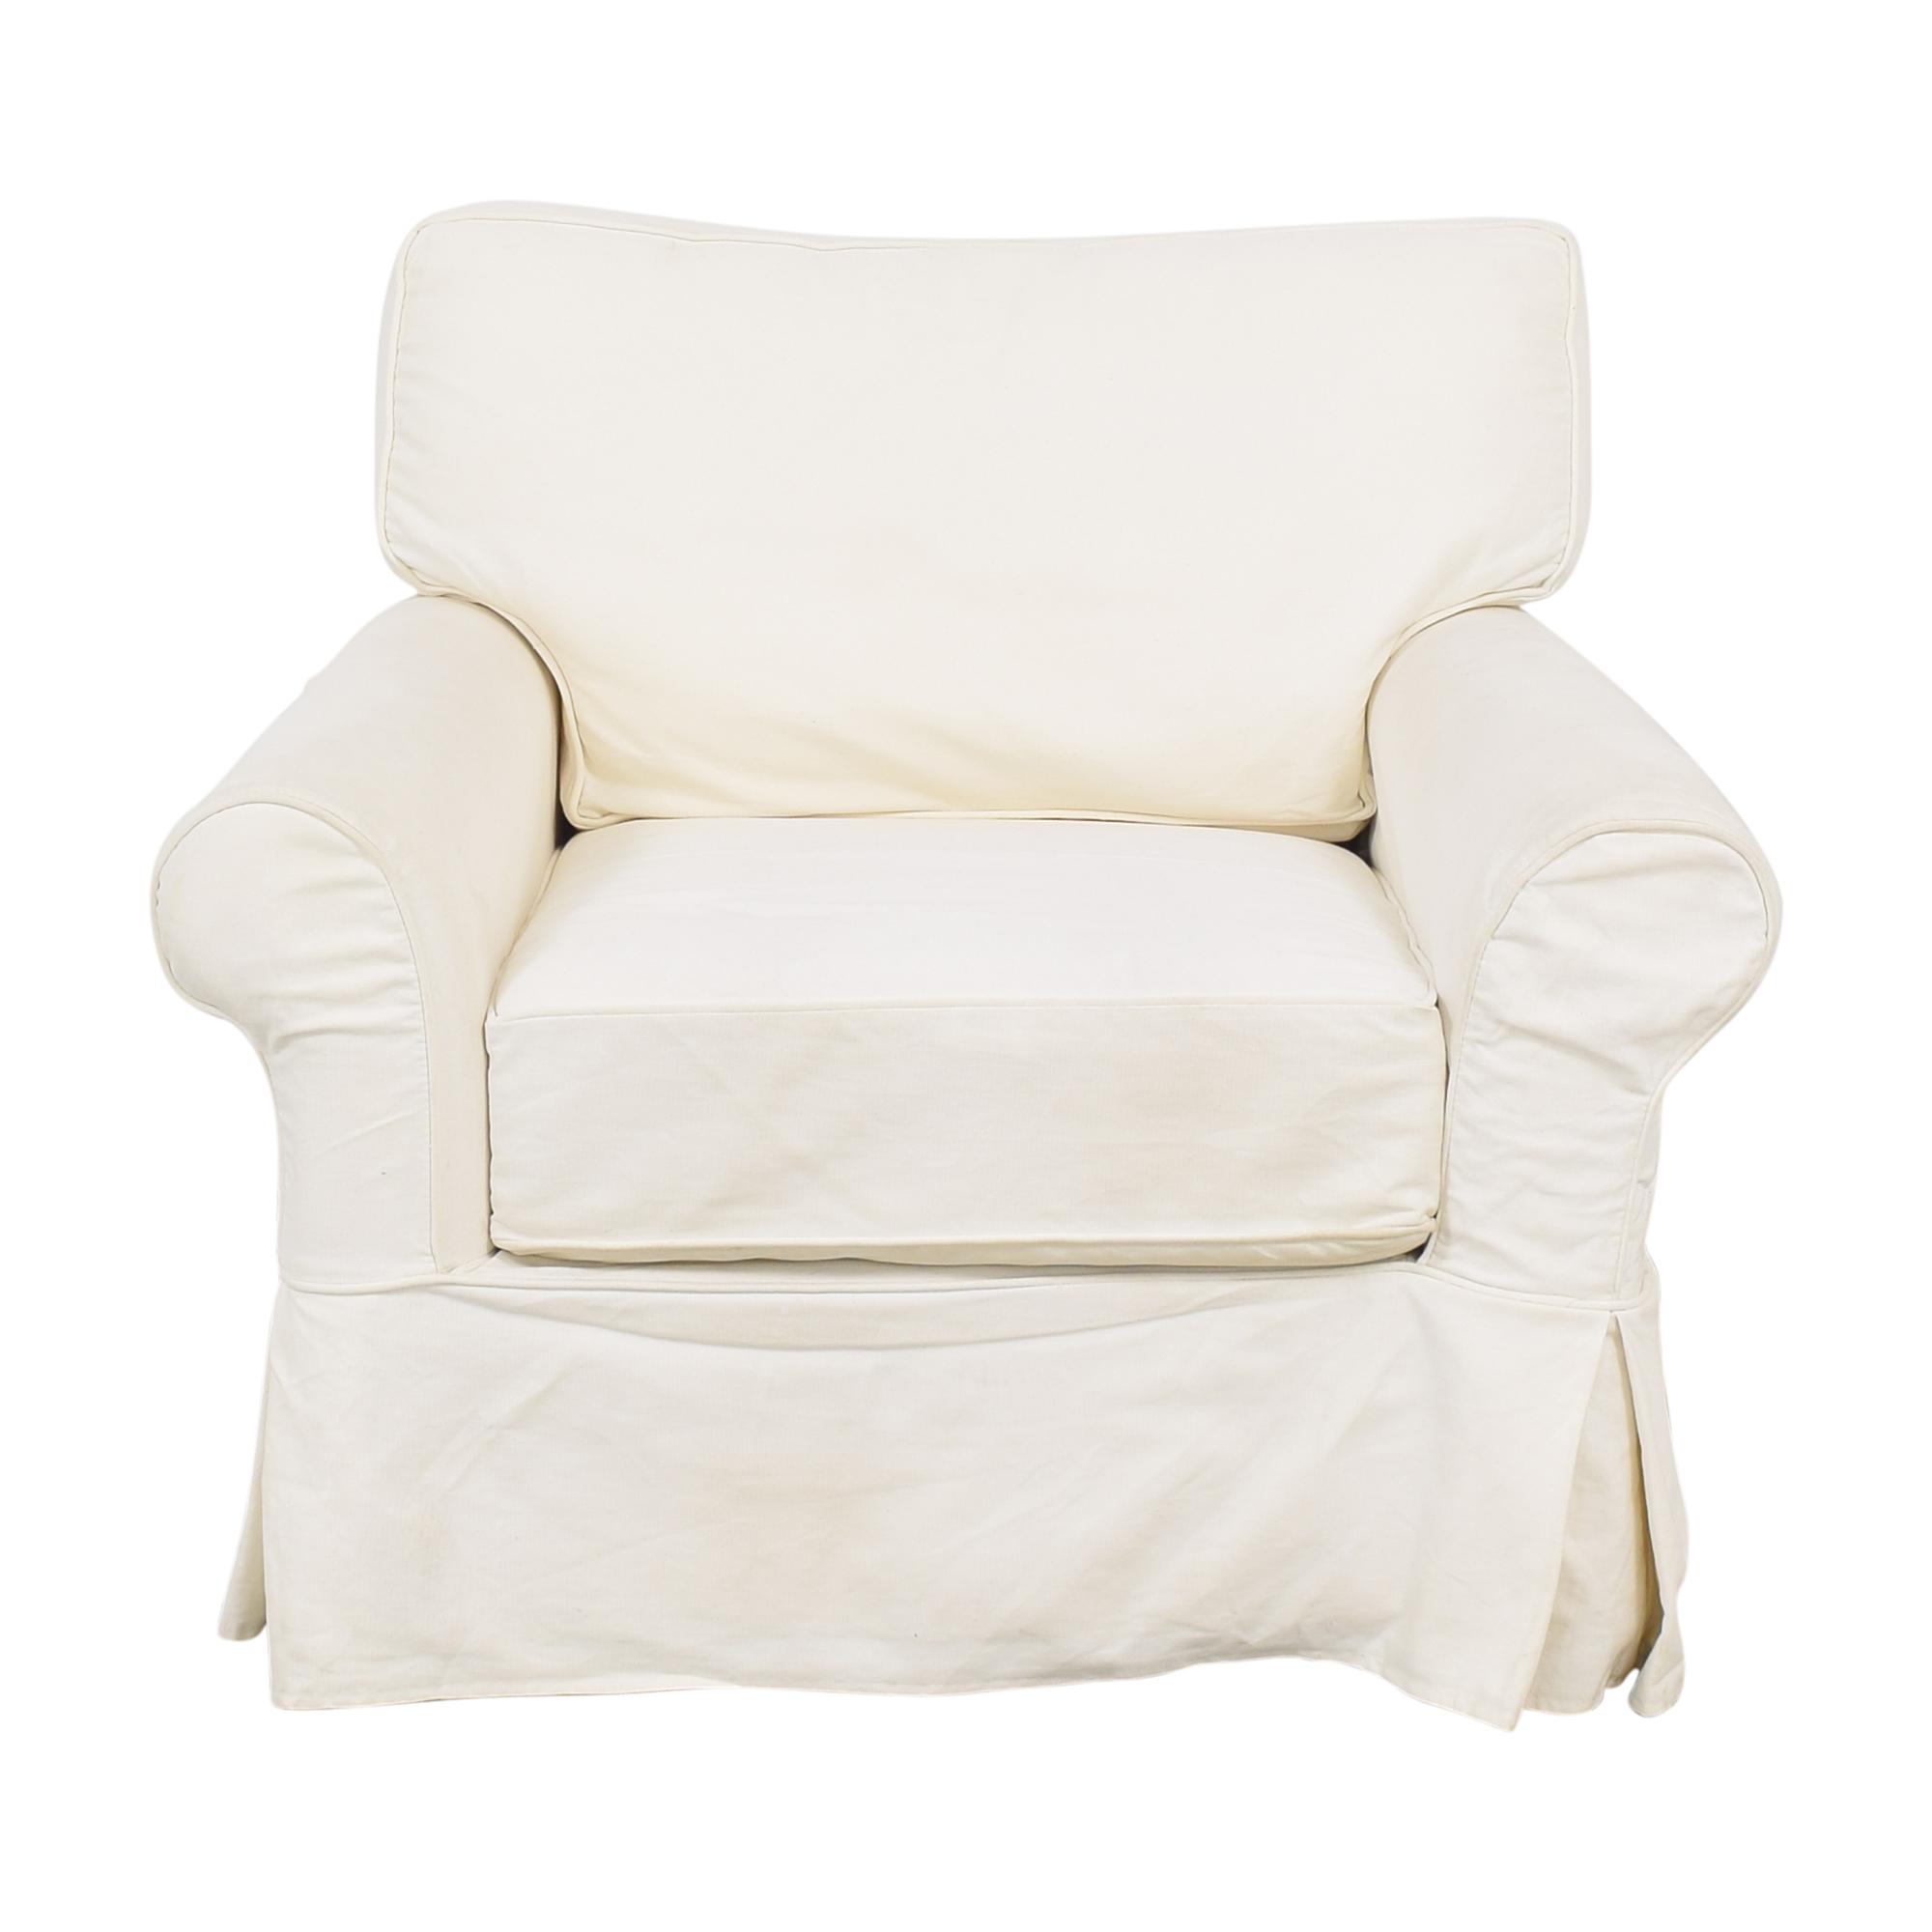 Crate & Barrel Crate & Barrel Slipcovered Arm Chair with Ottoman on sale